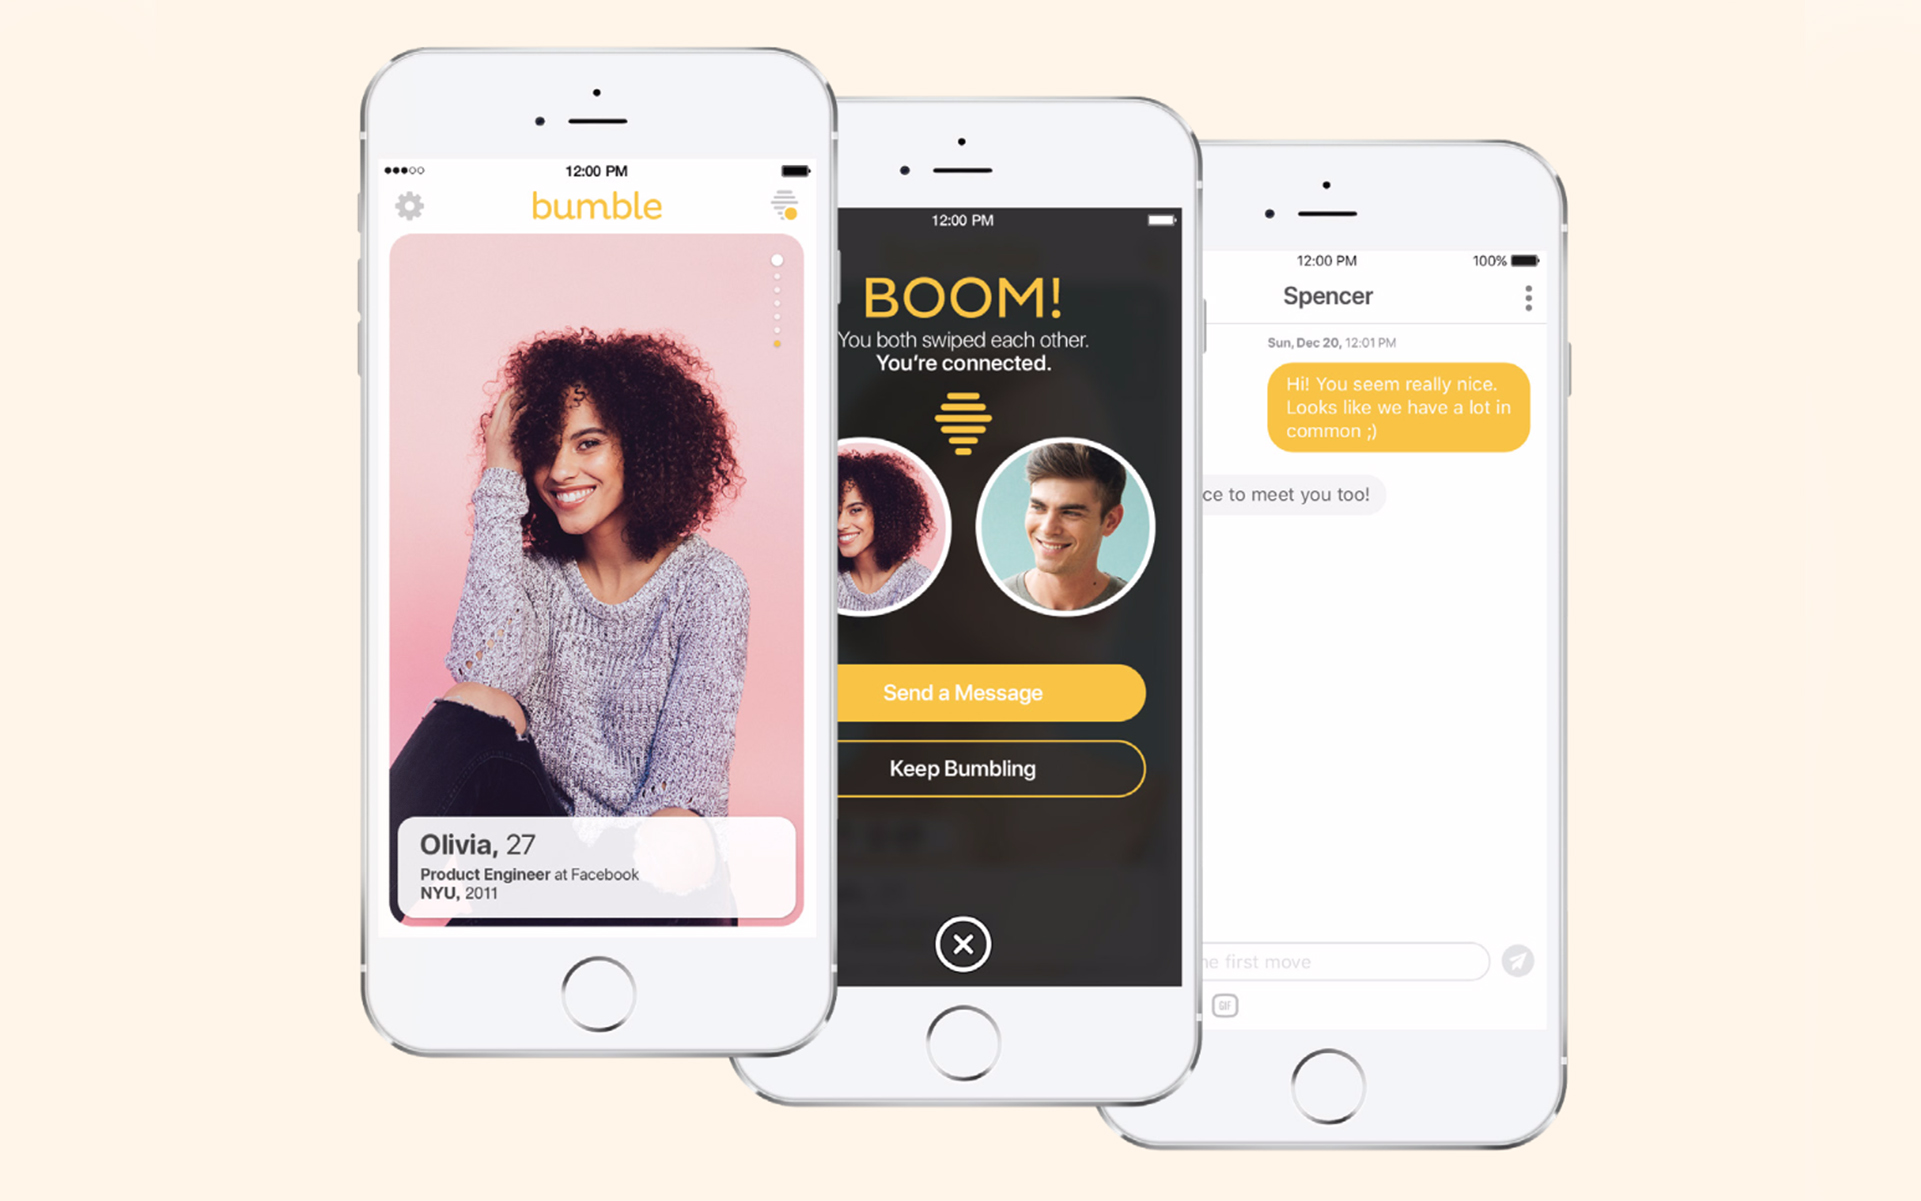 free dating apps tinder They fire up their dating app of choice -- be that tinder, grindr, bumble, happn, what have you -- and start swiping it is, unfortunately, not free.